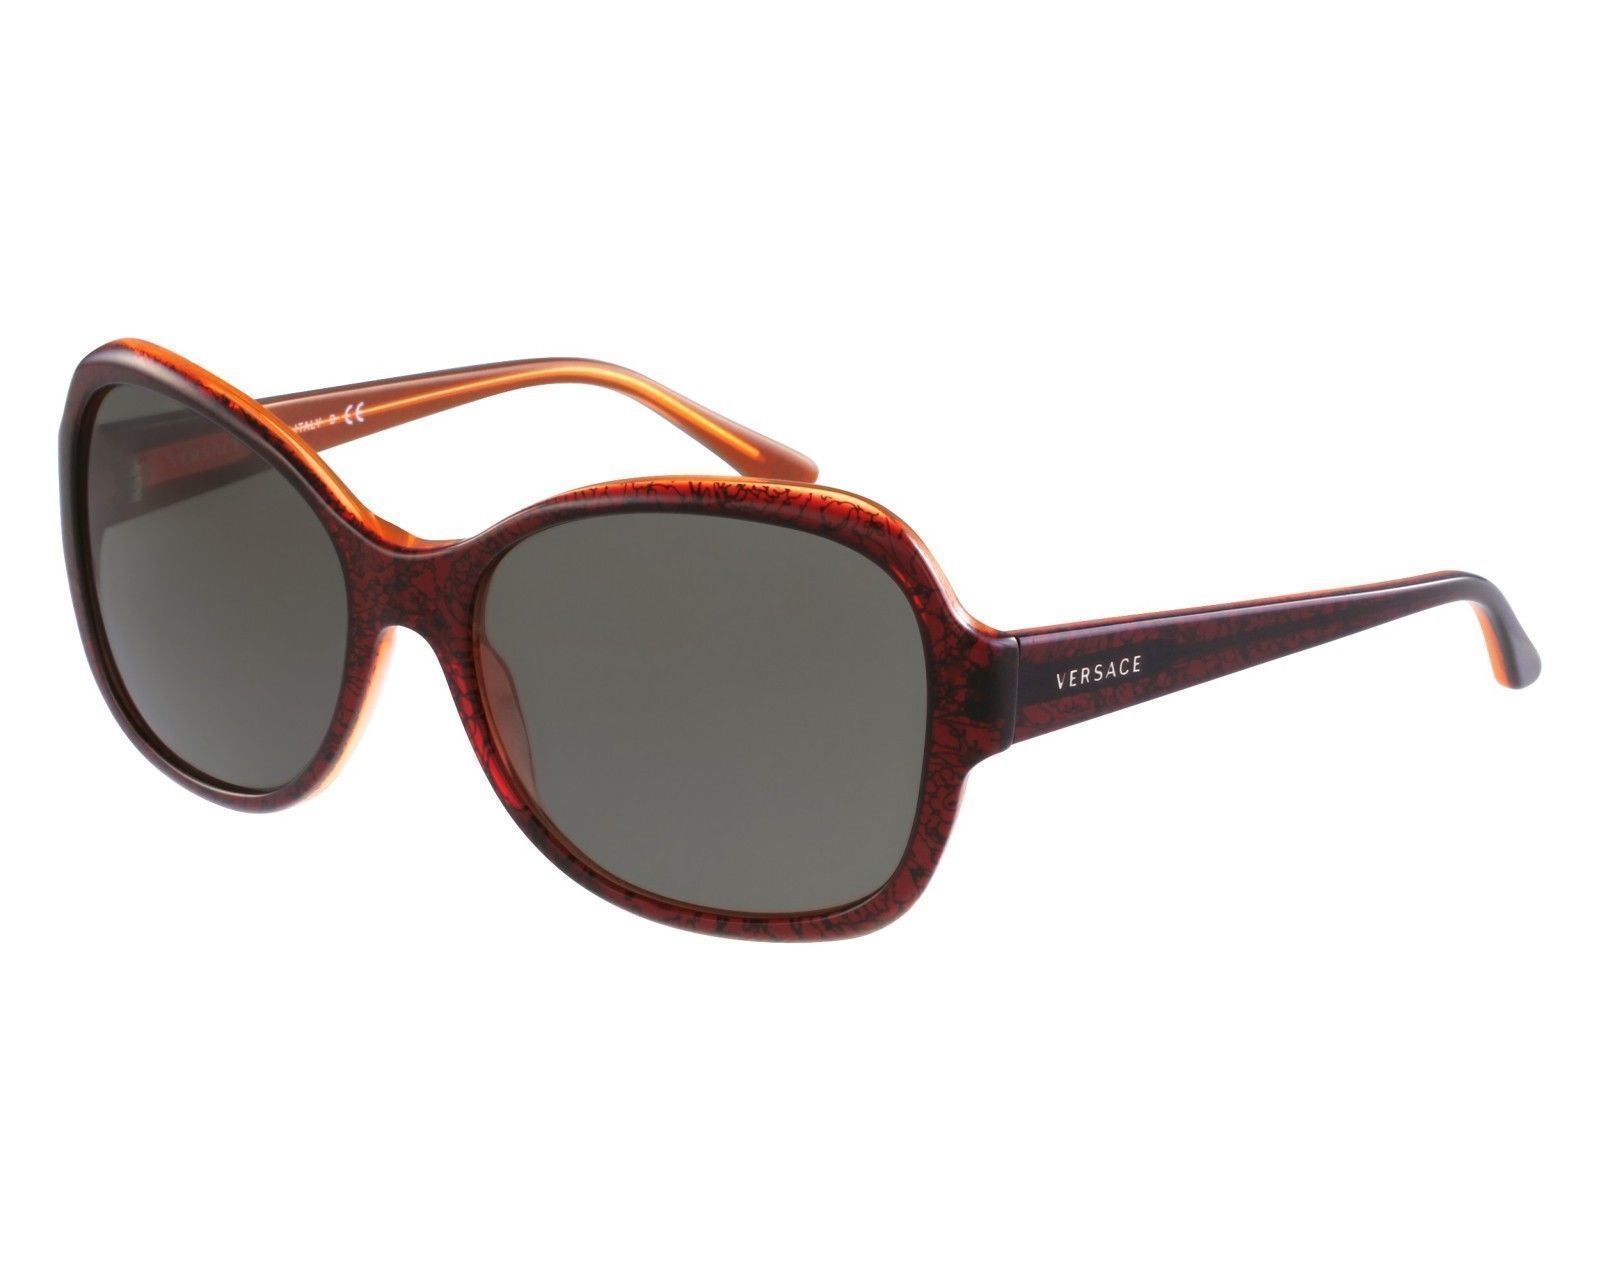 9eca5cc3c2f40 Versace mod. 4259 5089 73 Baroque Bordeaux Transparent   Brown Sunglasses -  47 - ₨6